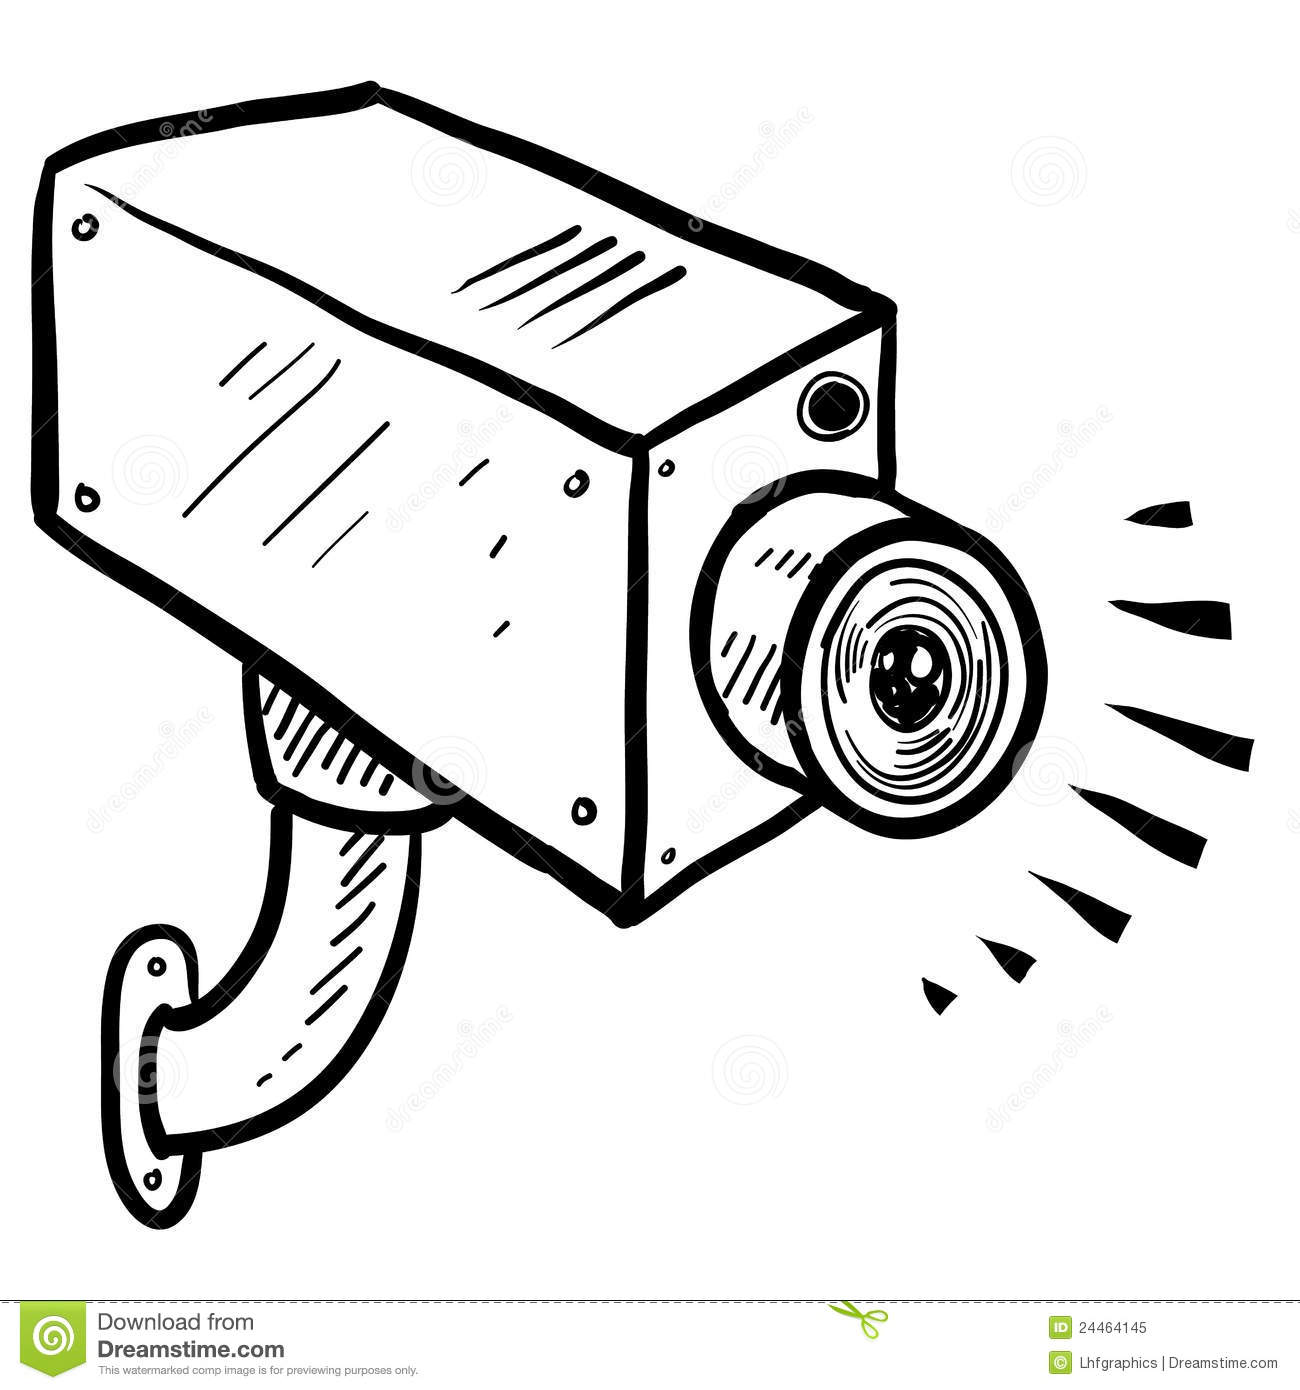 cctv security camera sketch stock vector